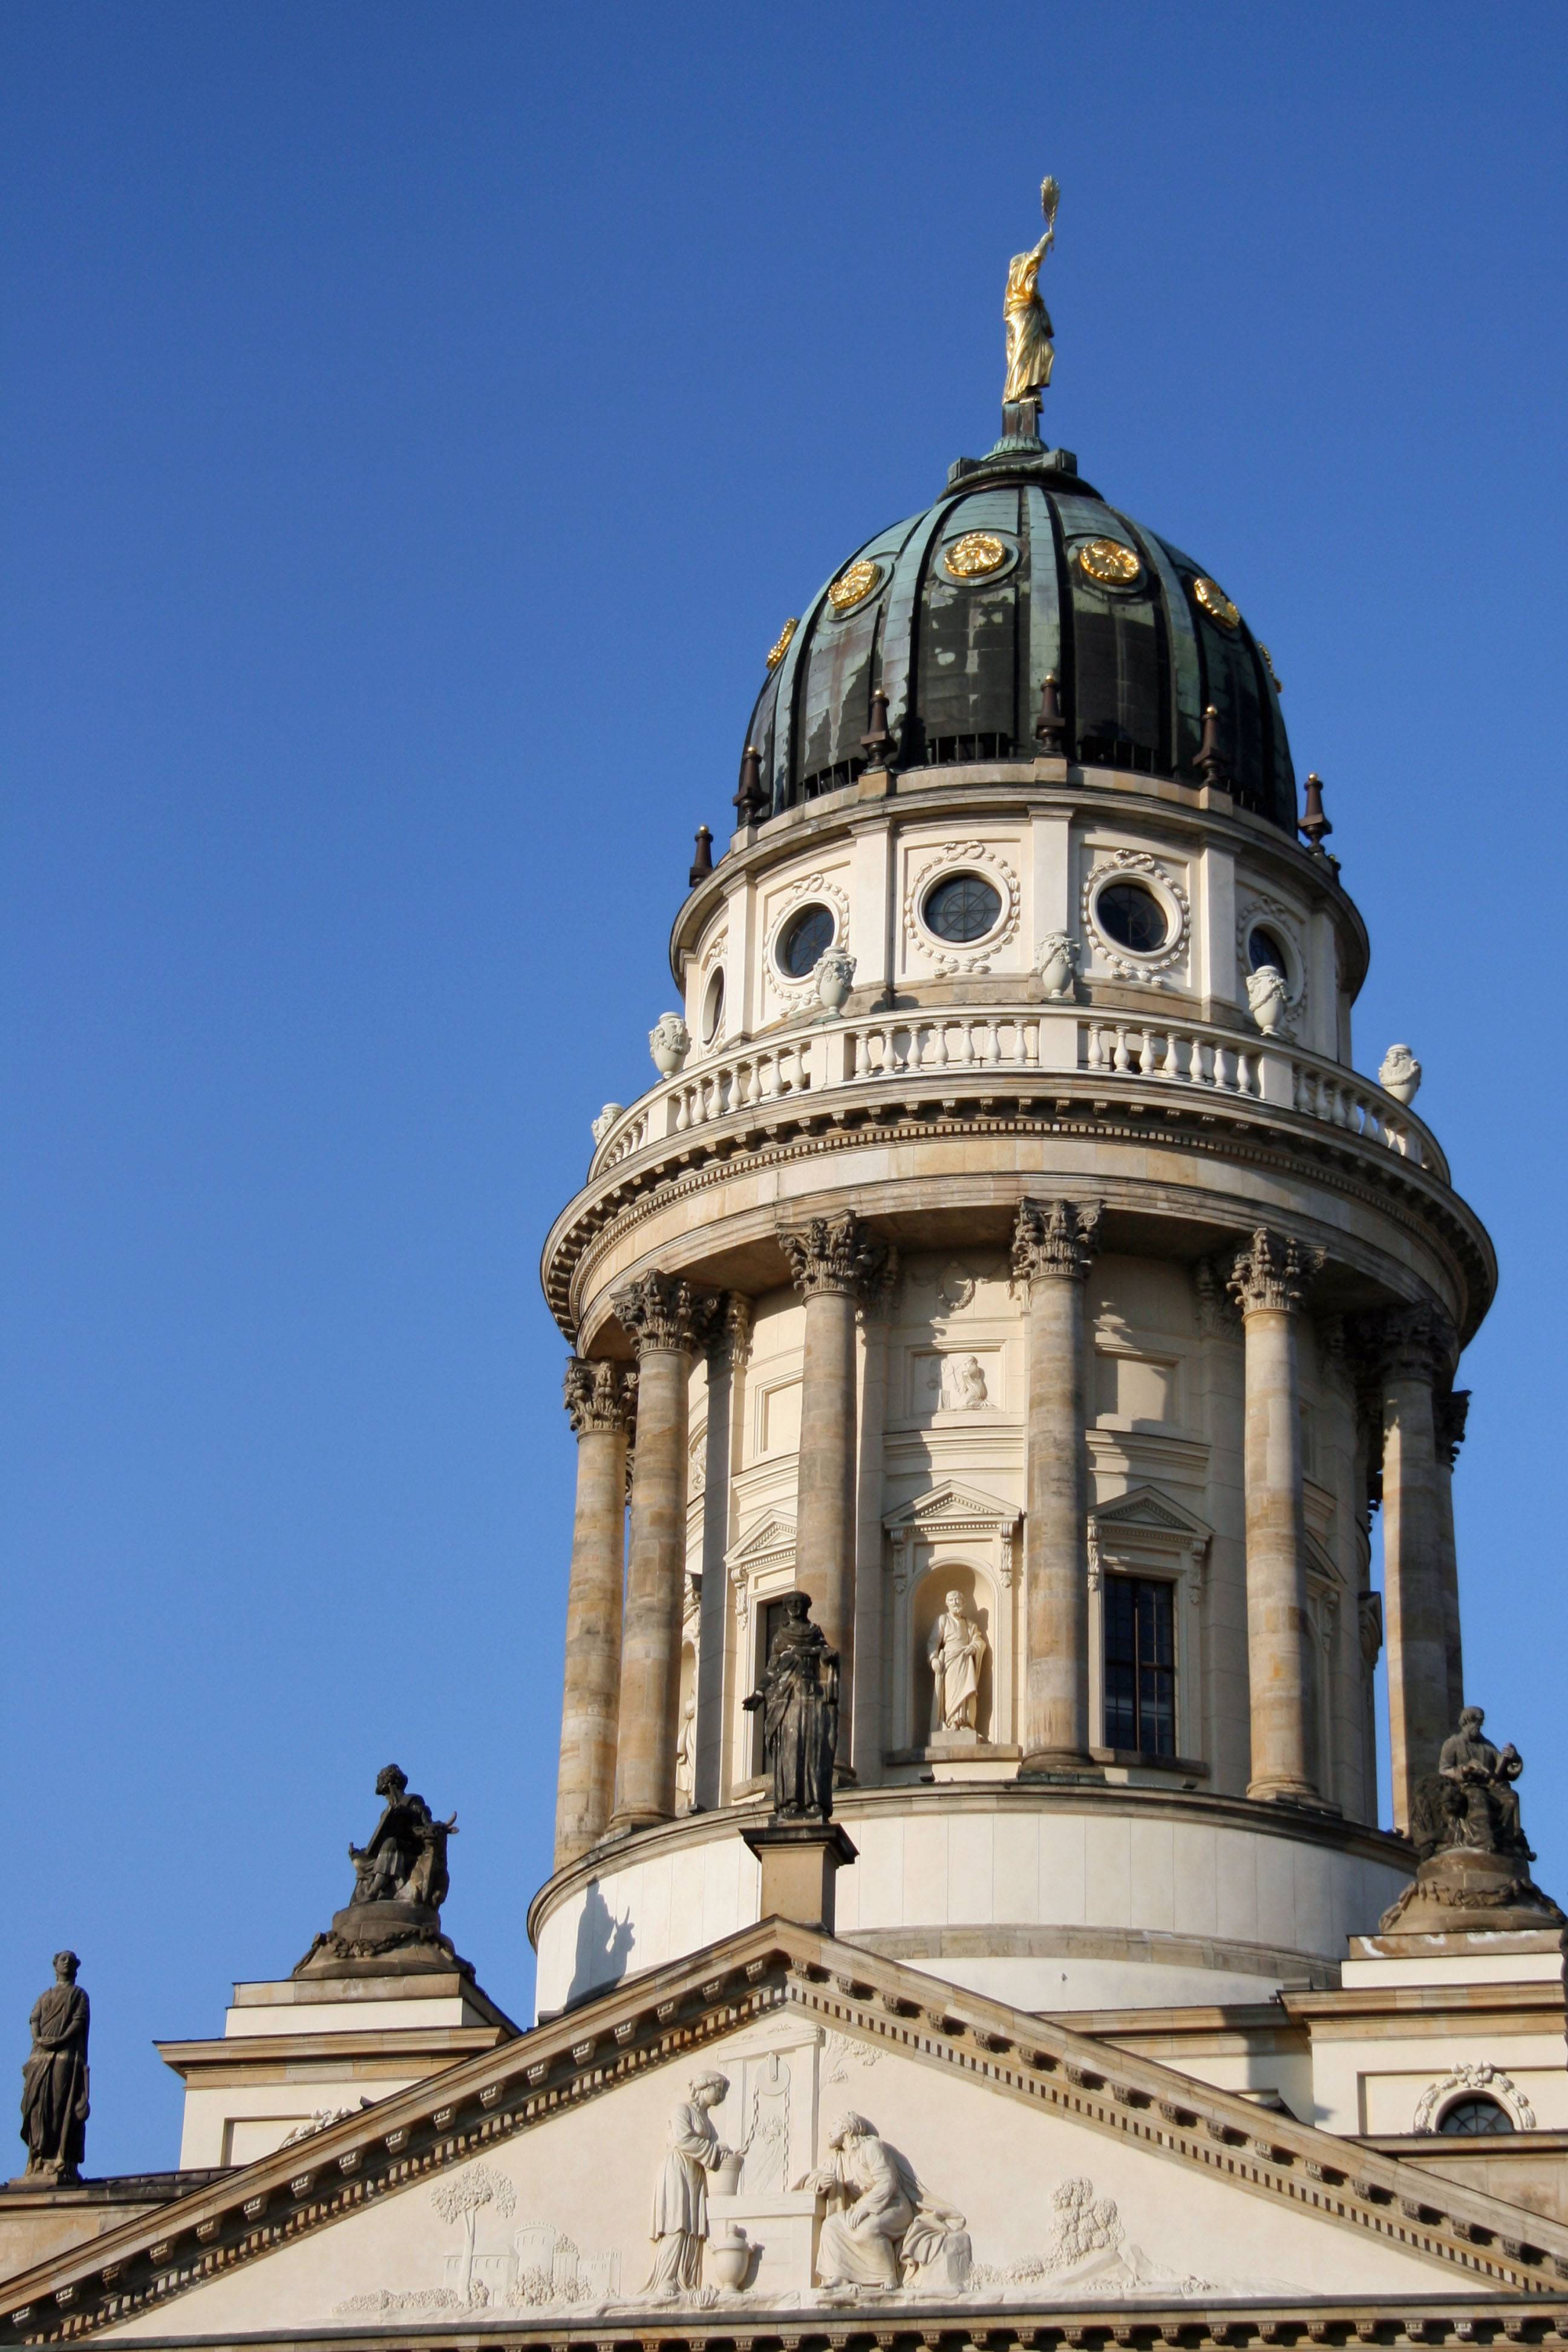 The Cupola and Viewing Gallery of the Französischer Dom (French Cathedral) in Berlin from the Gendarmenmarkt